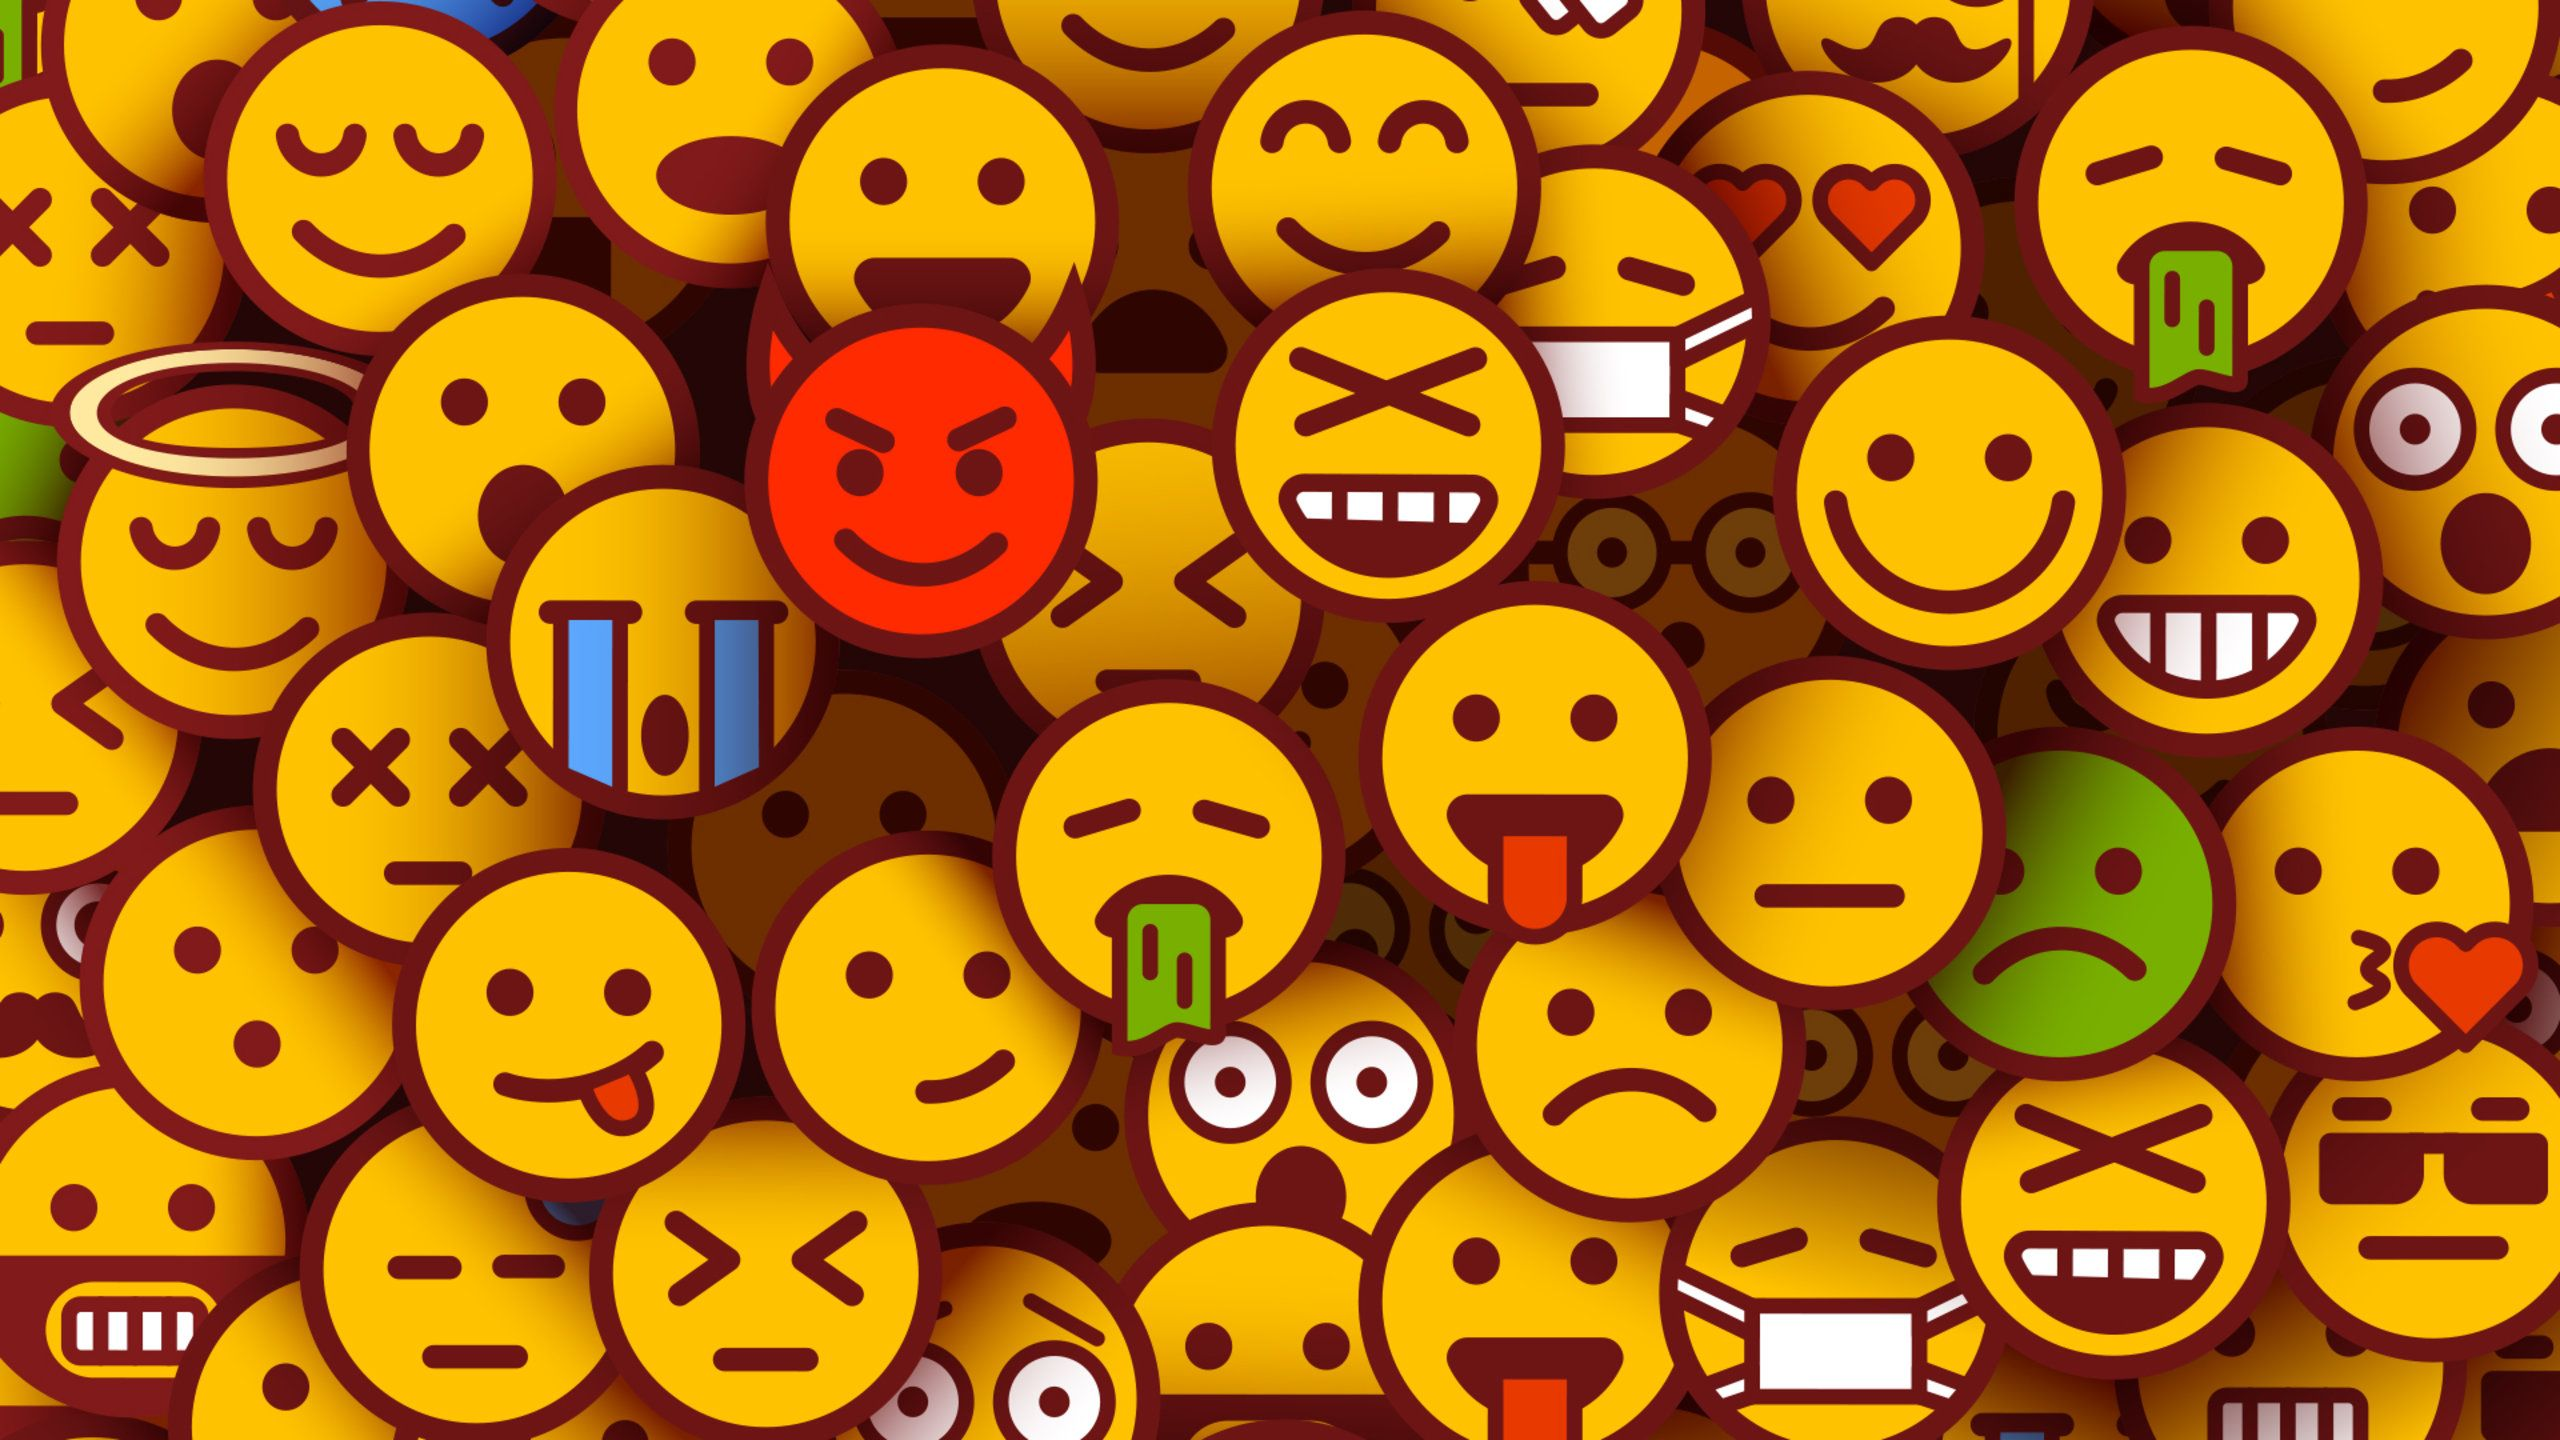 Funny Emoji Hd Wallpapers New Tab Theme Laughing Or Crying Funny Emojis Are For Everyone And Make Awesome Wallpapers Enjo Funny Emoji Sell Your Books Emoji